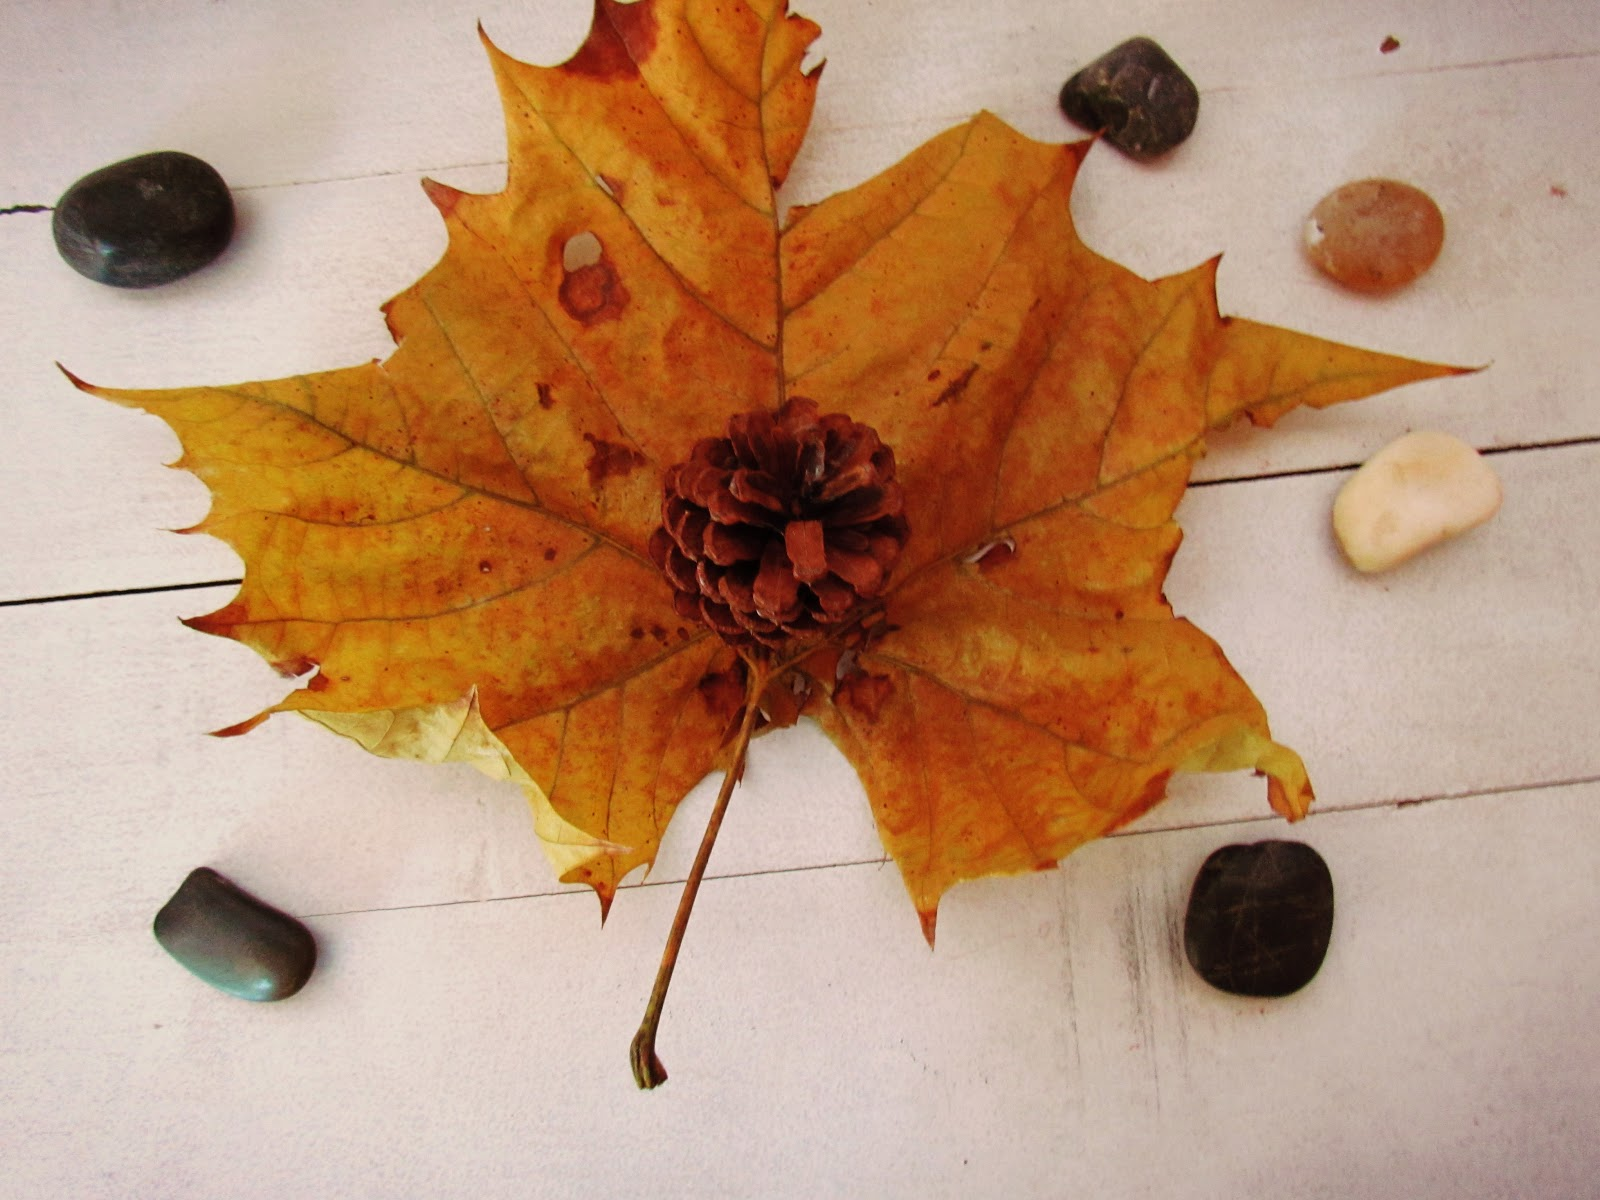 Rustic Golden Fall Leaf + Rocks Flat Lay Display and Pinecones